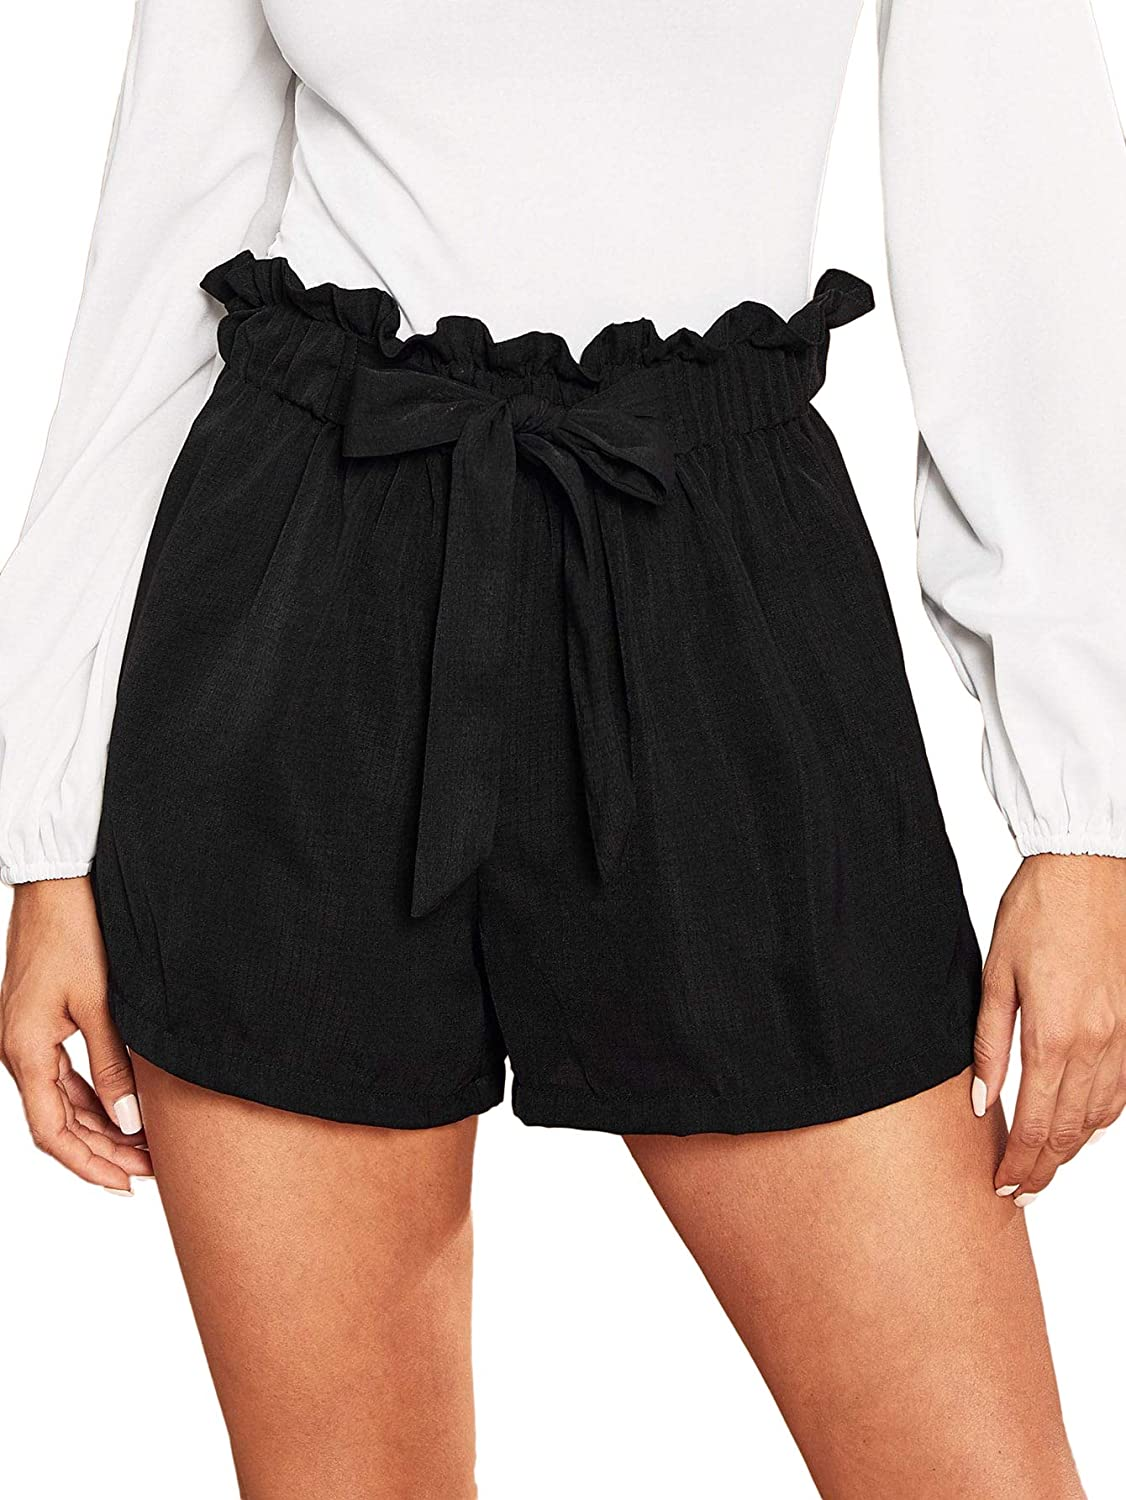 Black WDIRARA Women's Casual High Waisted Self Tie Ruffle Short Pants